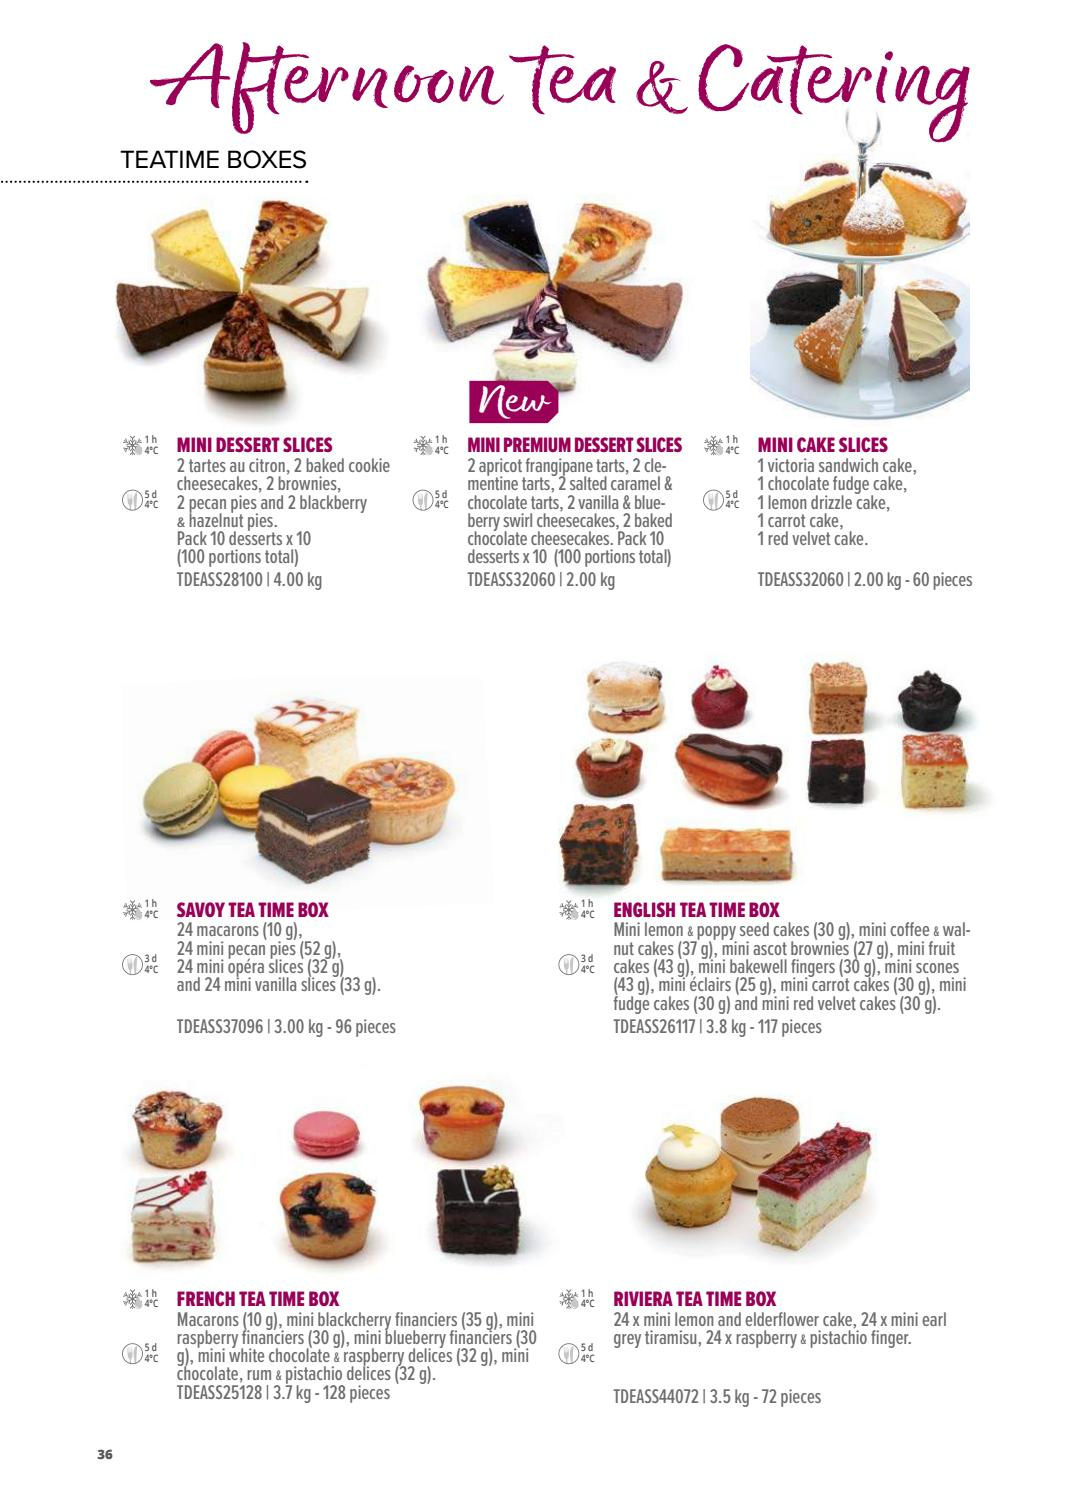 Catalogue 2019 Angleterre by La Compagnie des Desserts - issuu